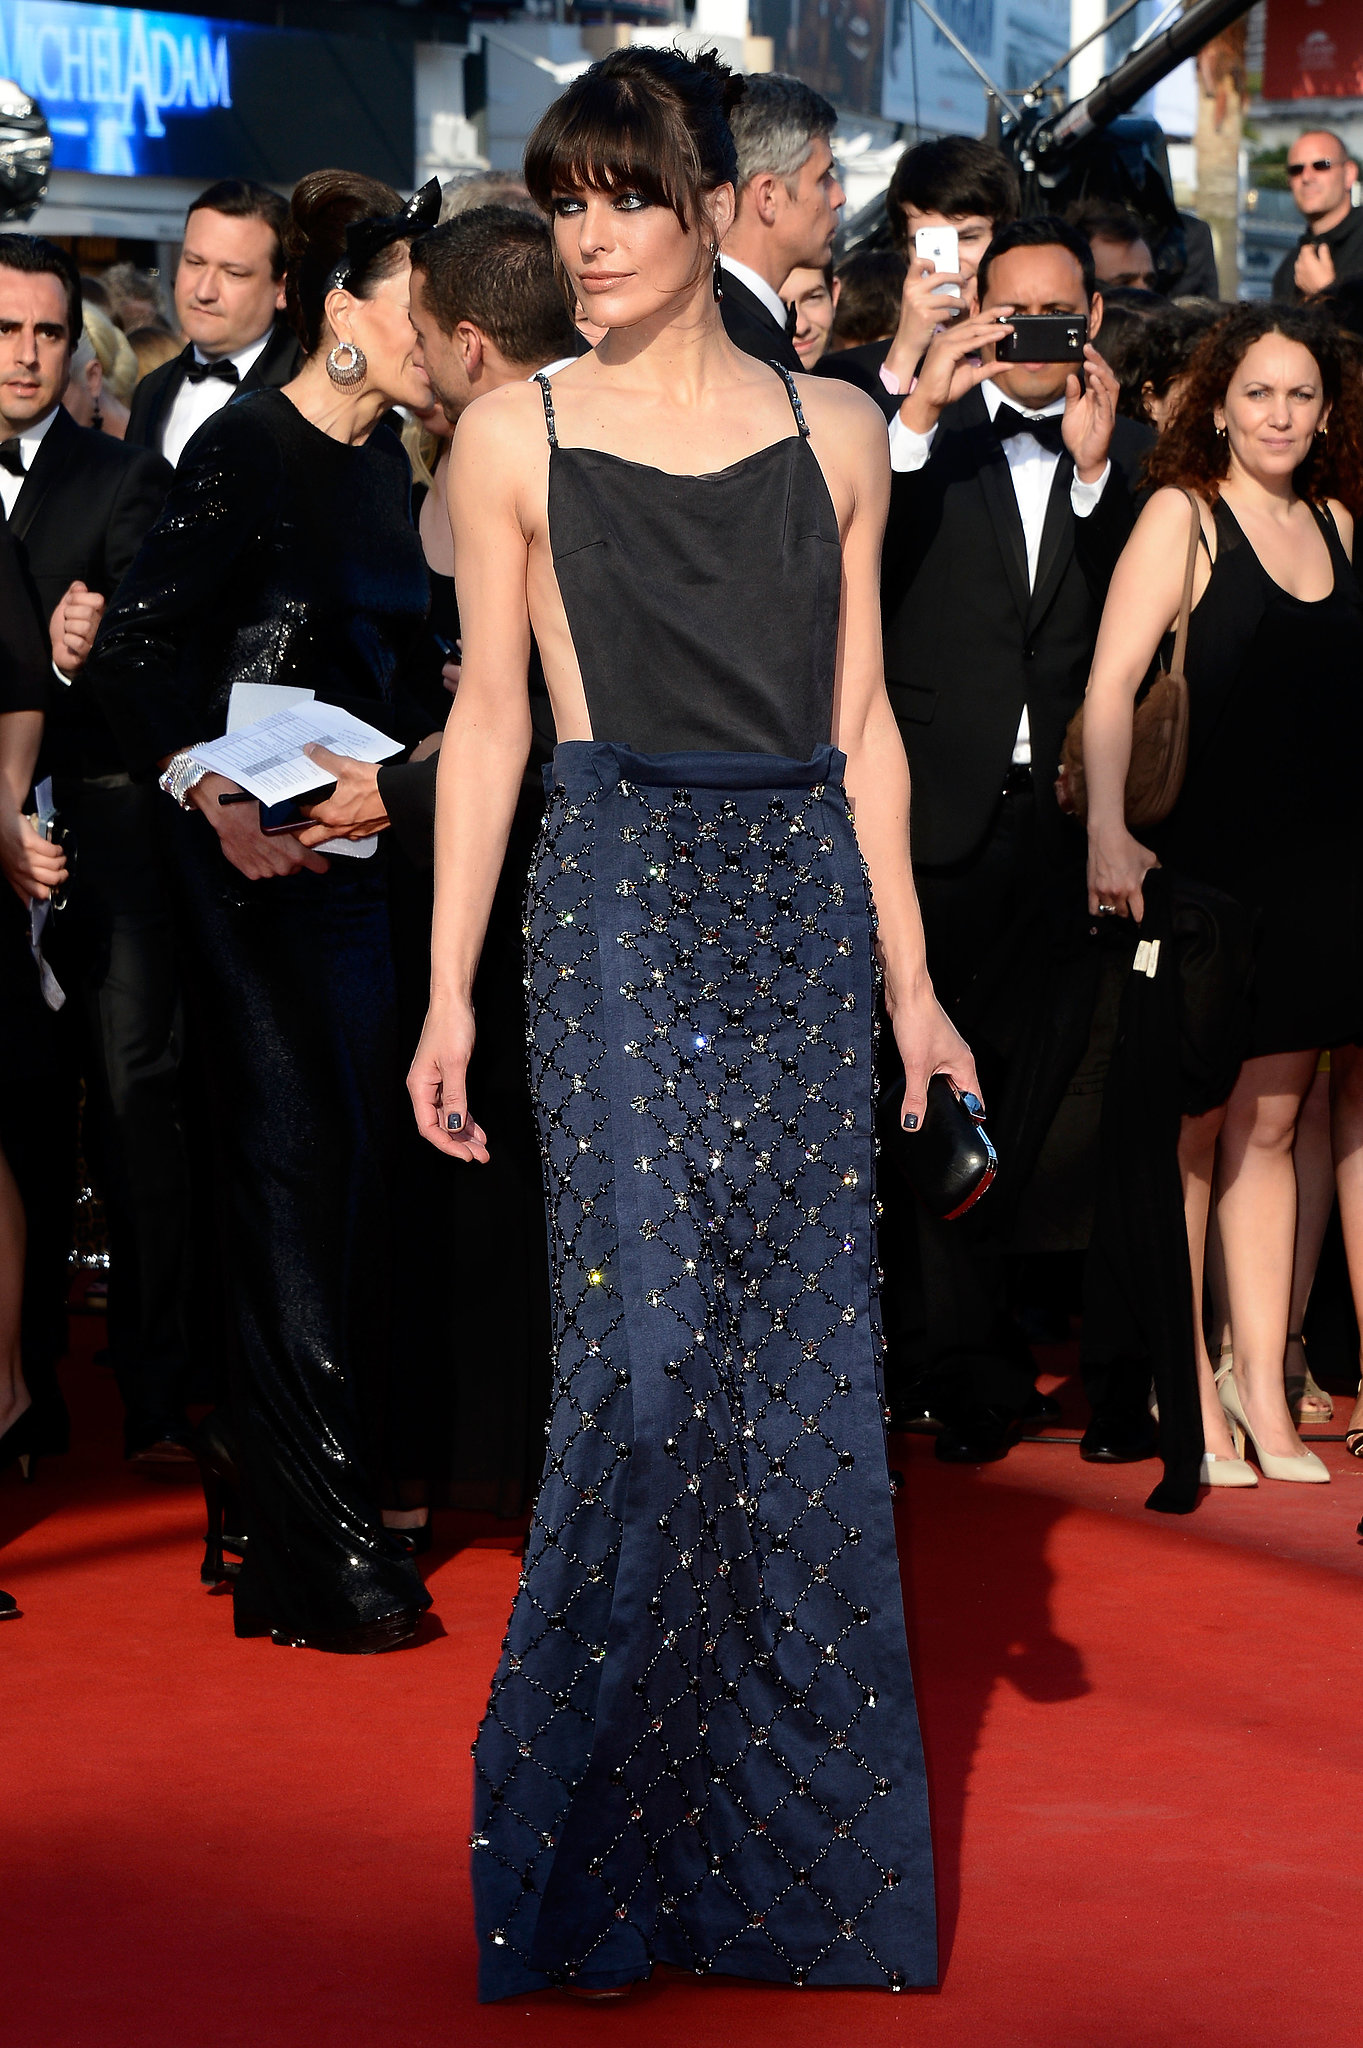 Milla Jovovich arrived at the Cleopatra premiere in Cannes on Tuesday.